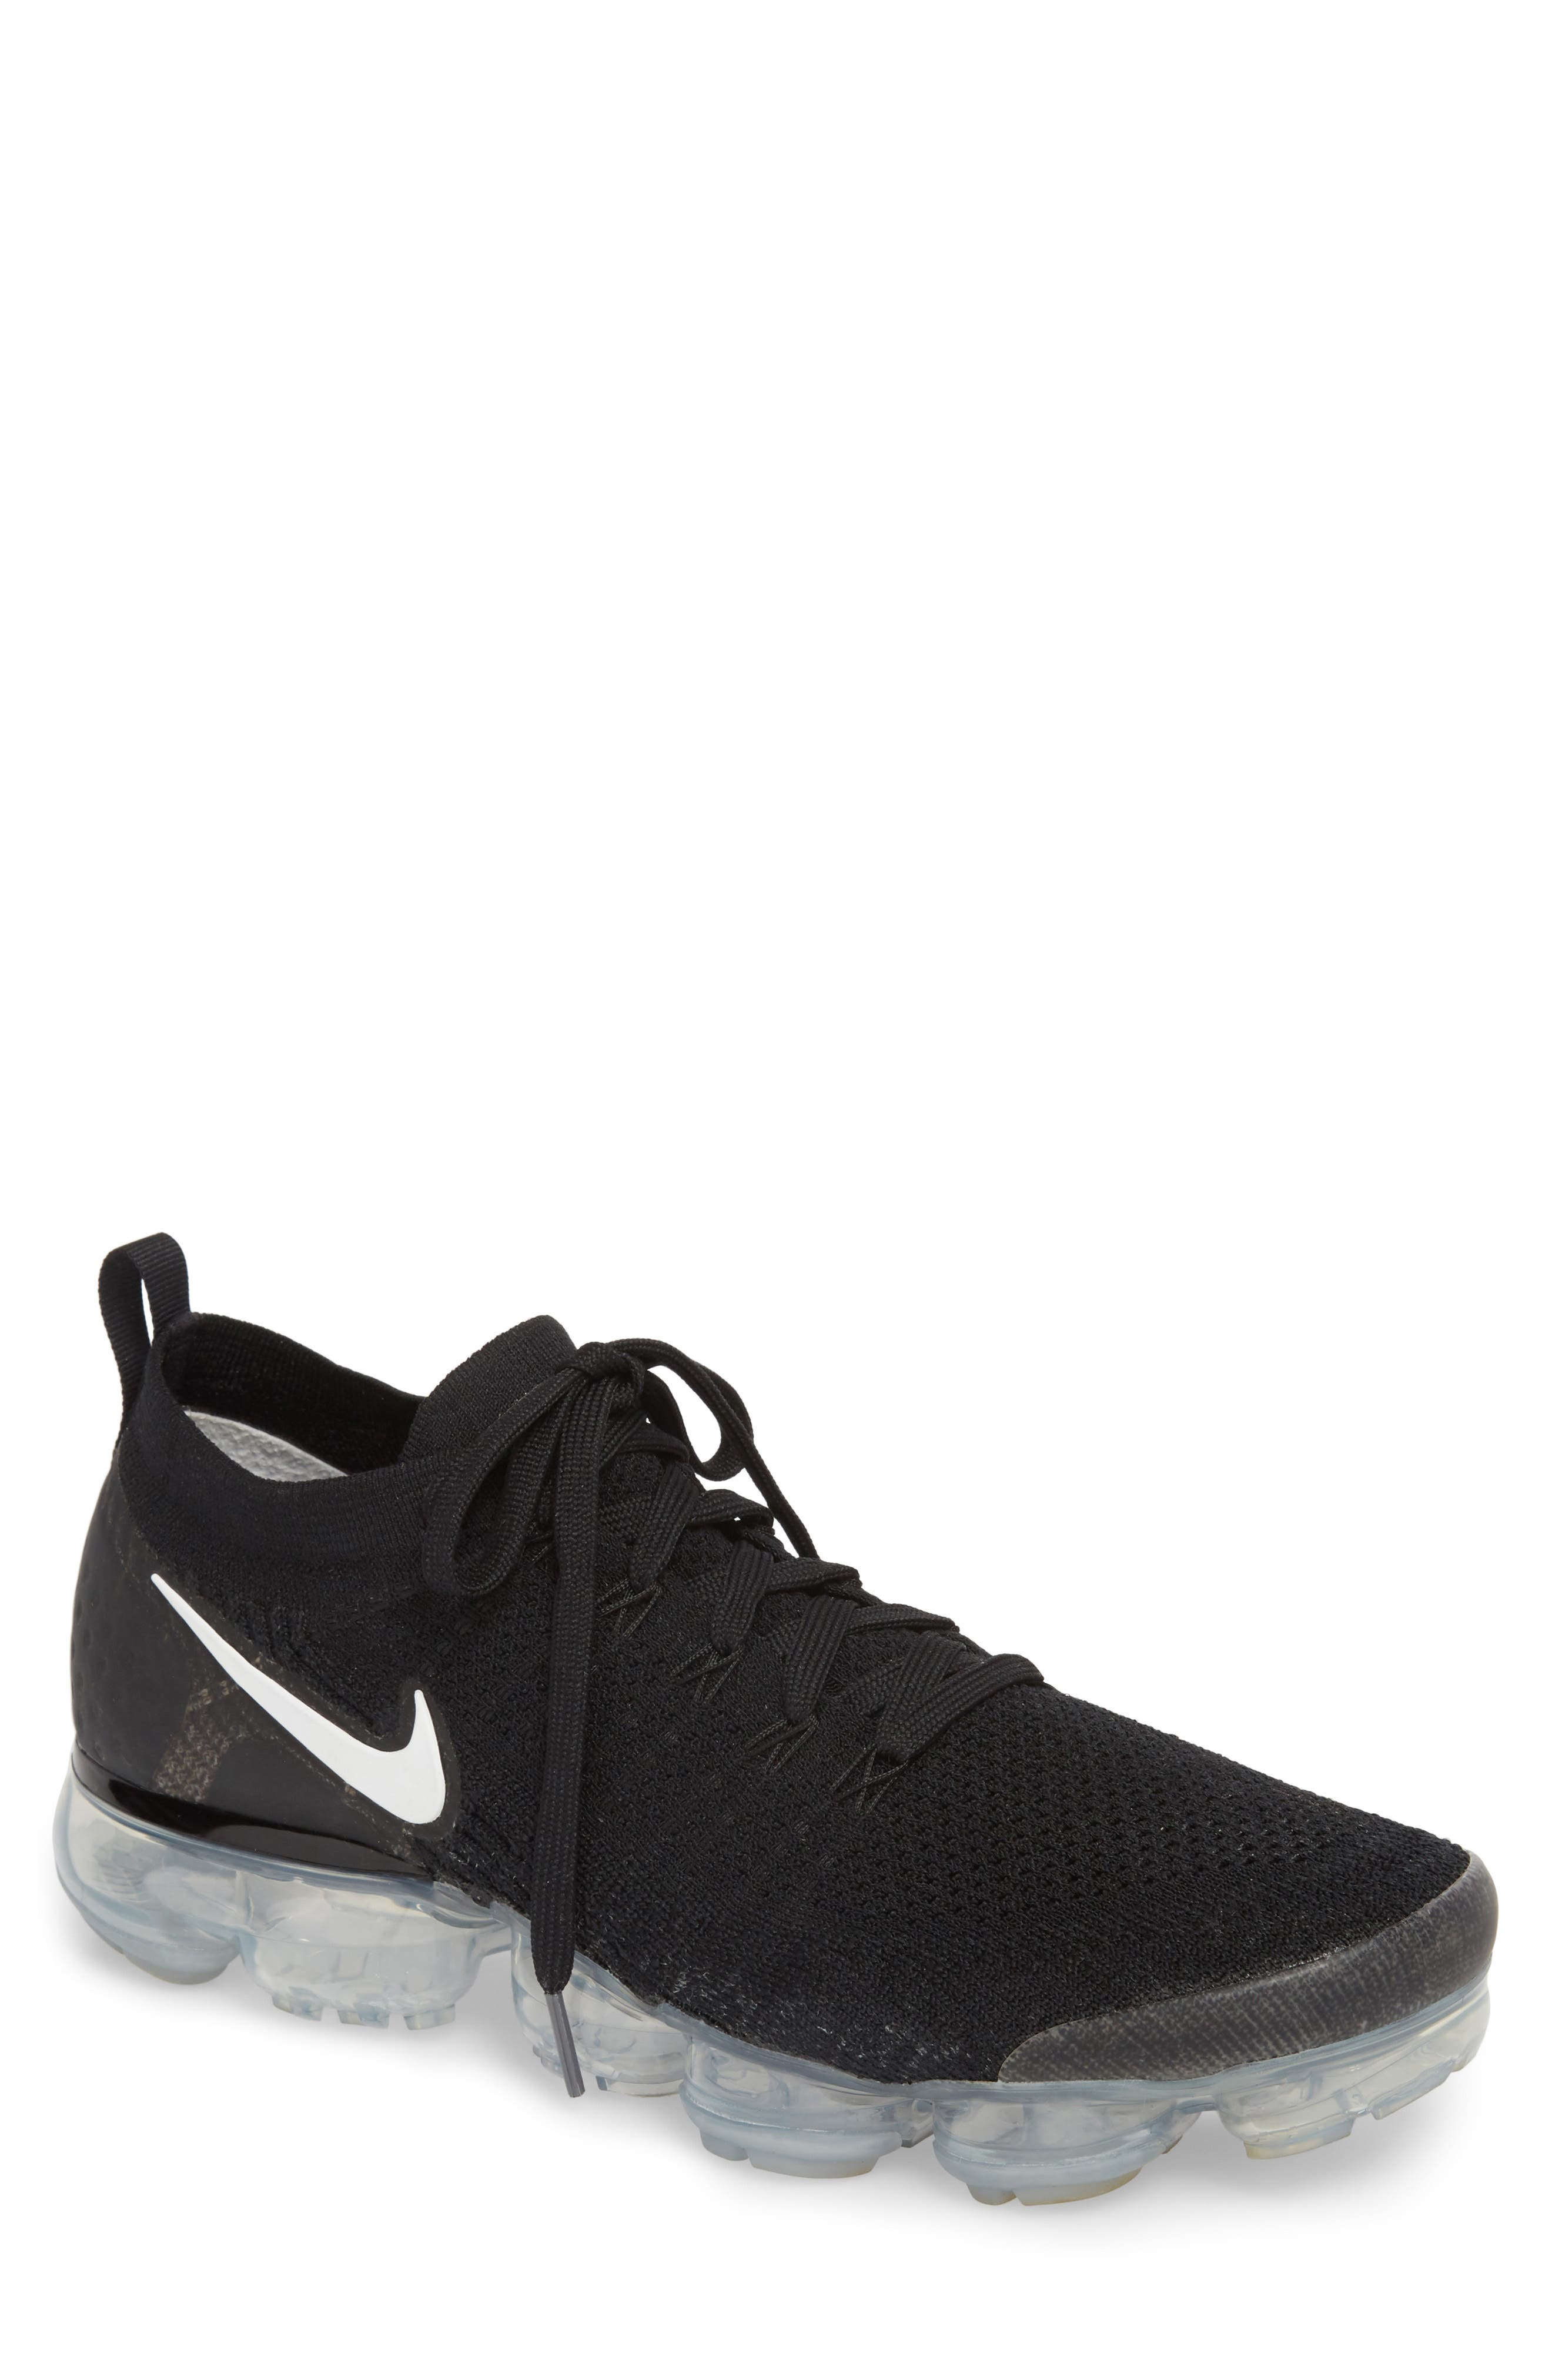 Air Vapormax Flyknit 2 Running Shoe,                         Main,                         color, 001